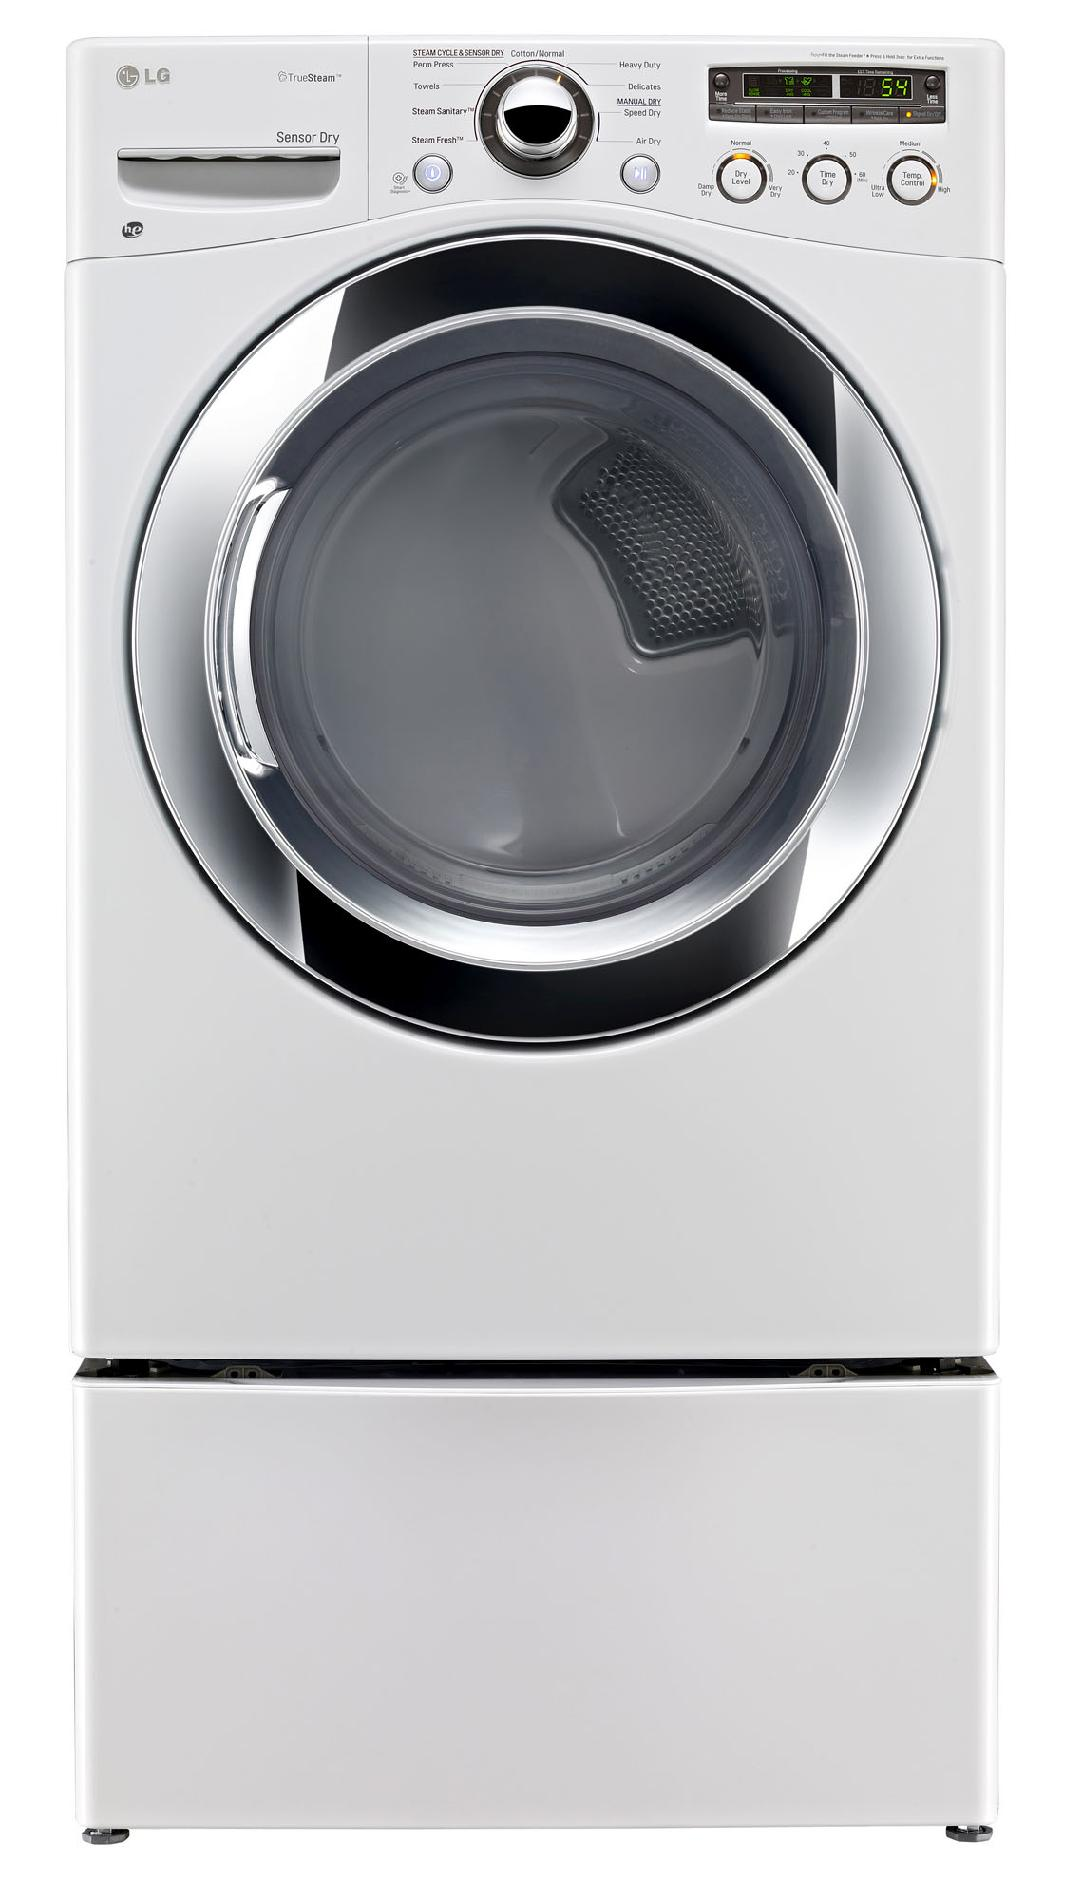 LG 7.3 cu. ft. Gas Dryer w/ Sensor Dry - White